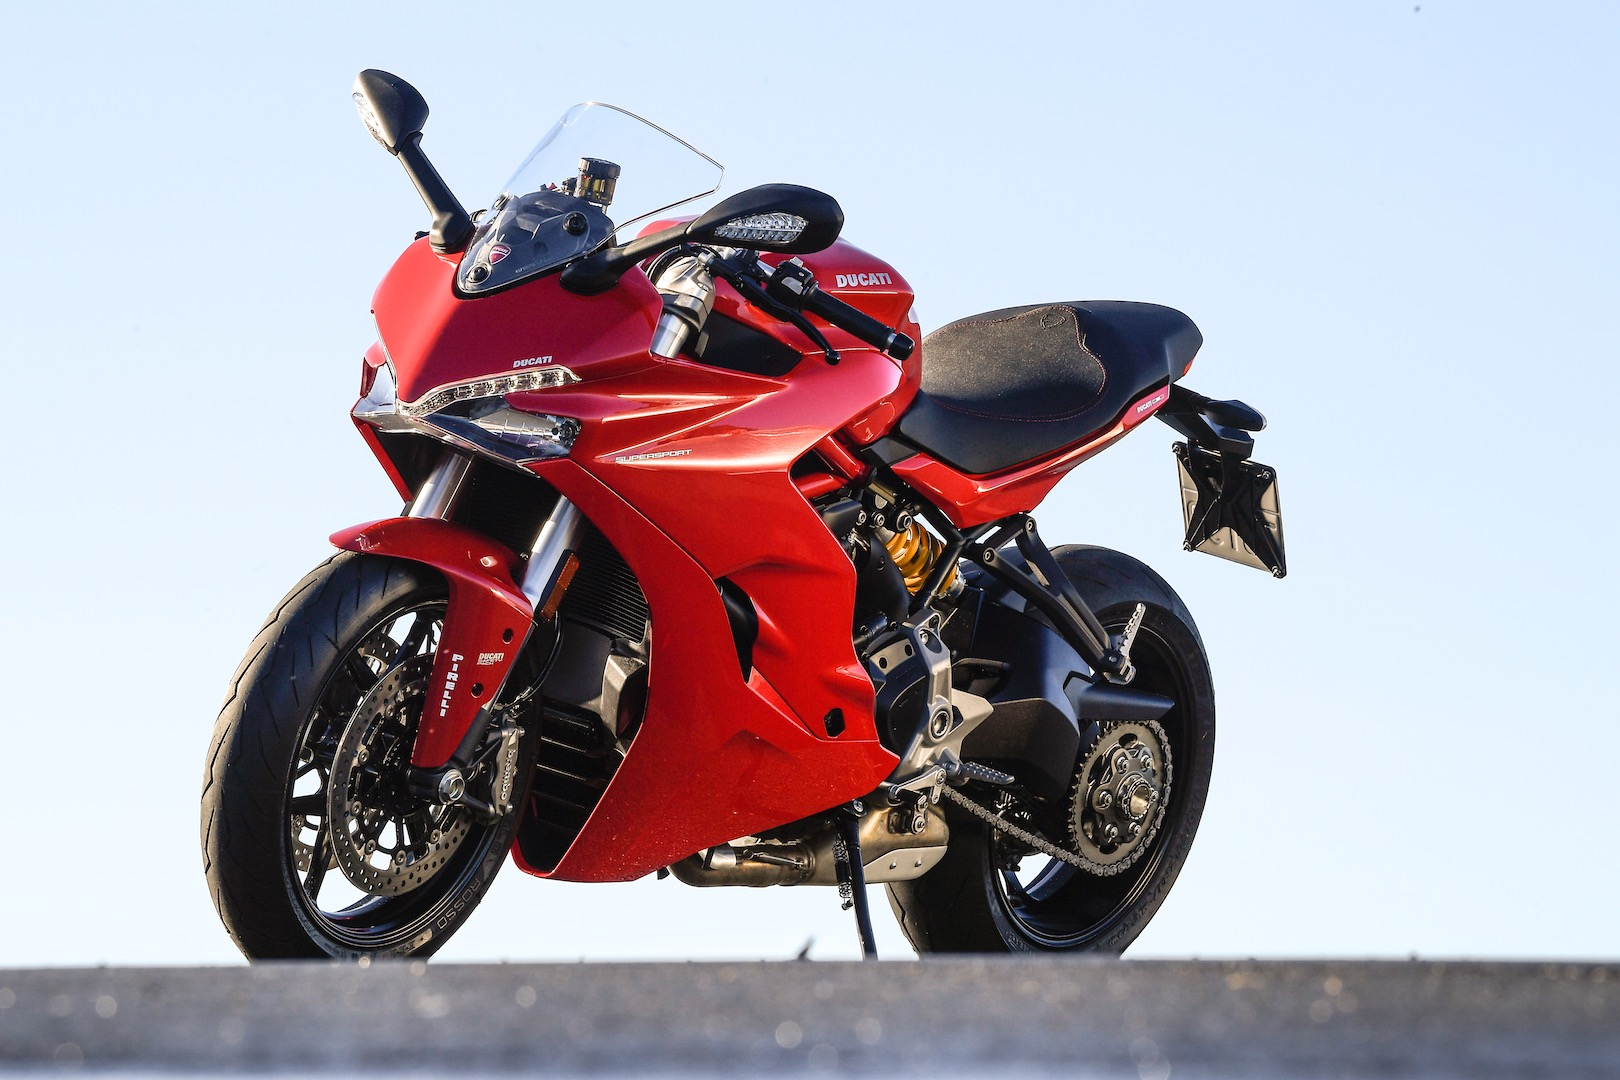 Ducati Sport Touring Motorcycles